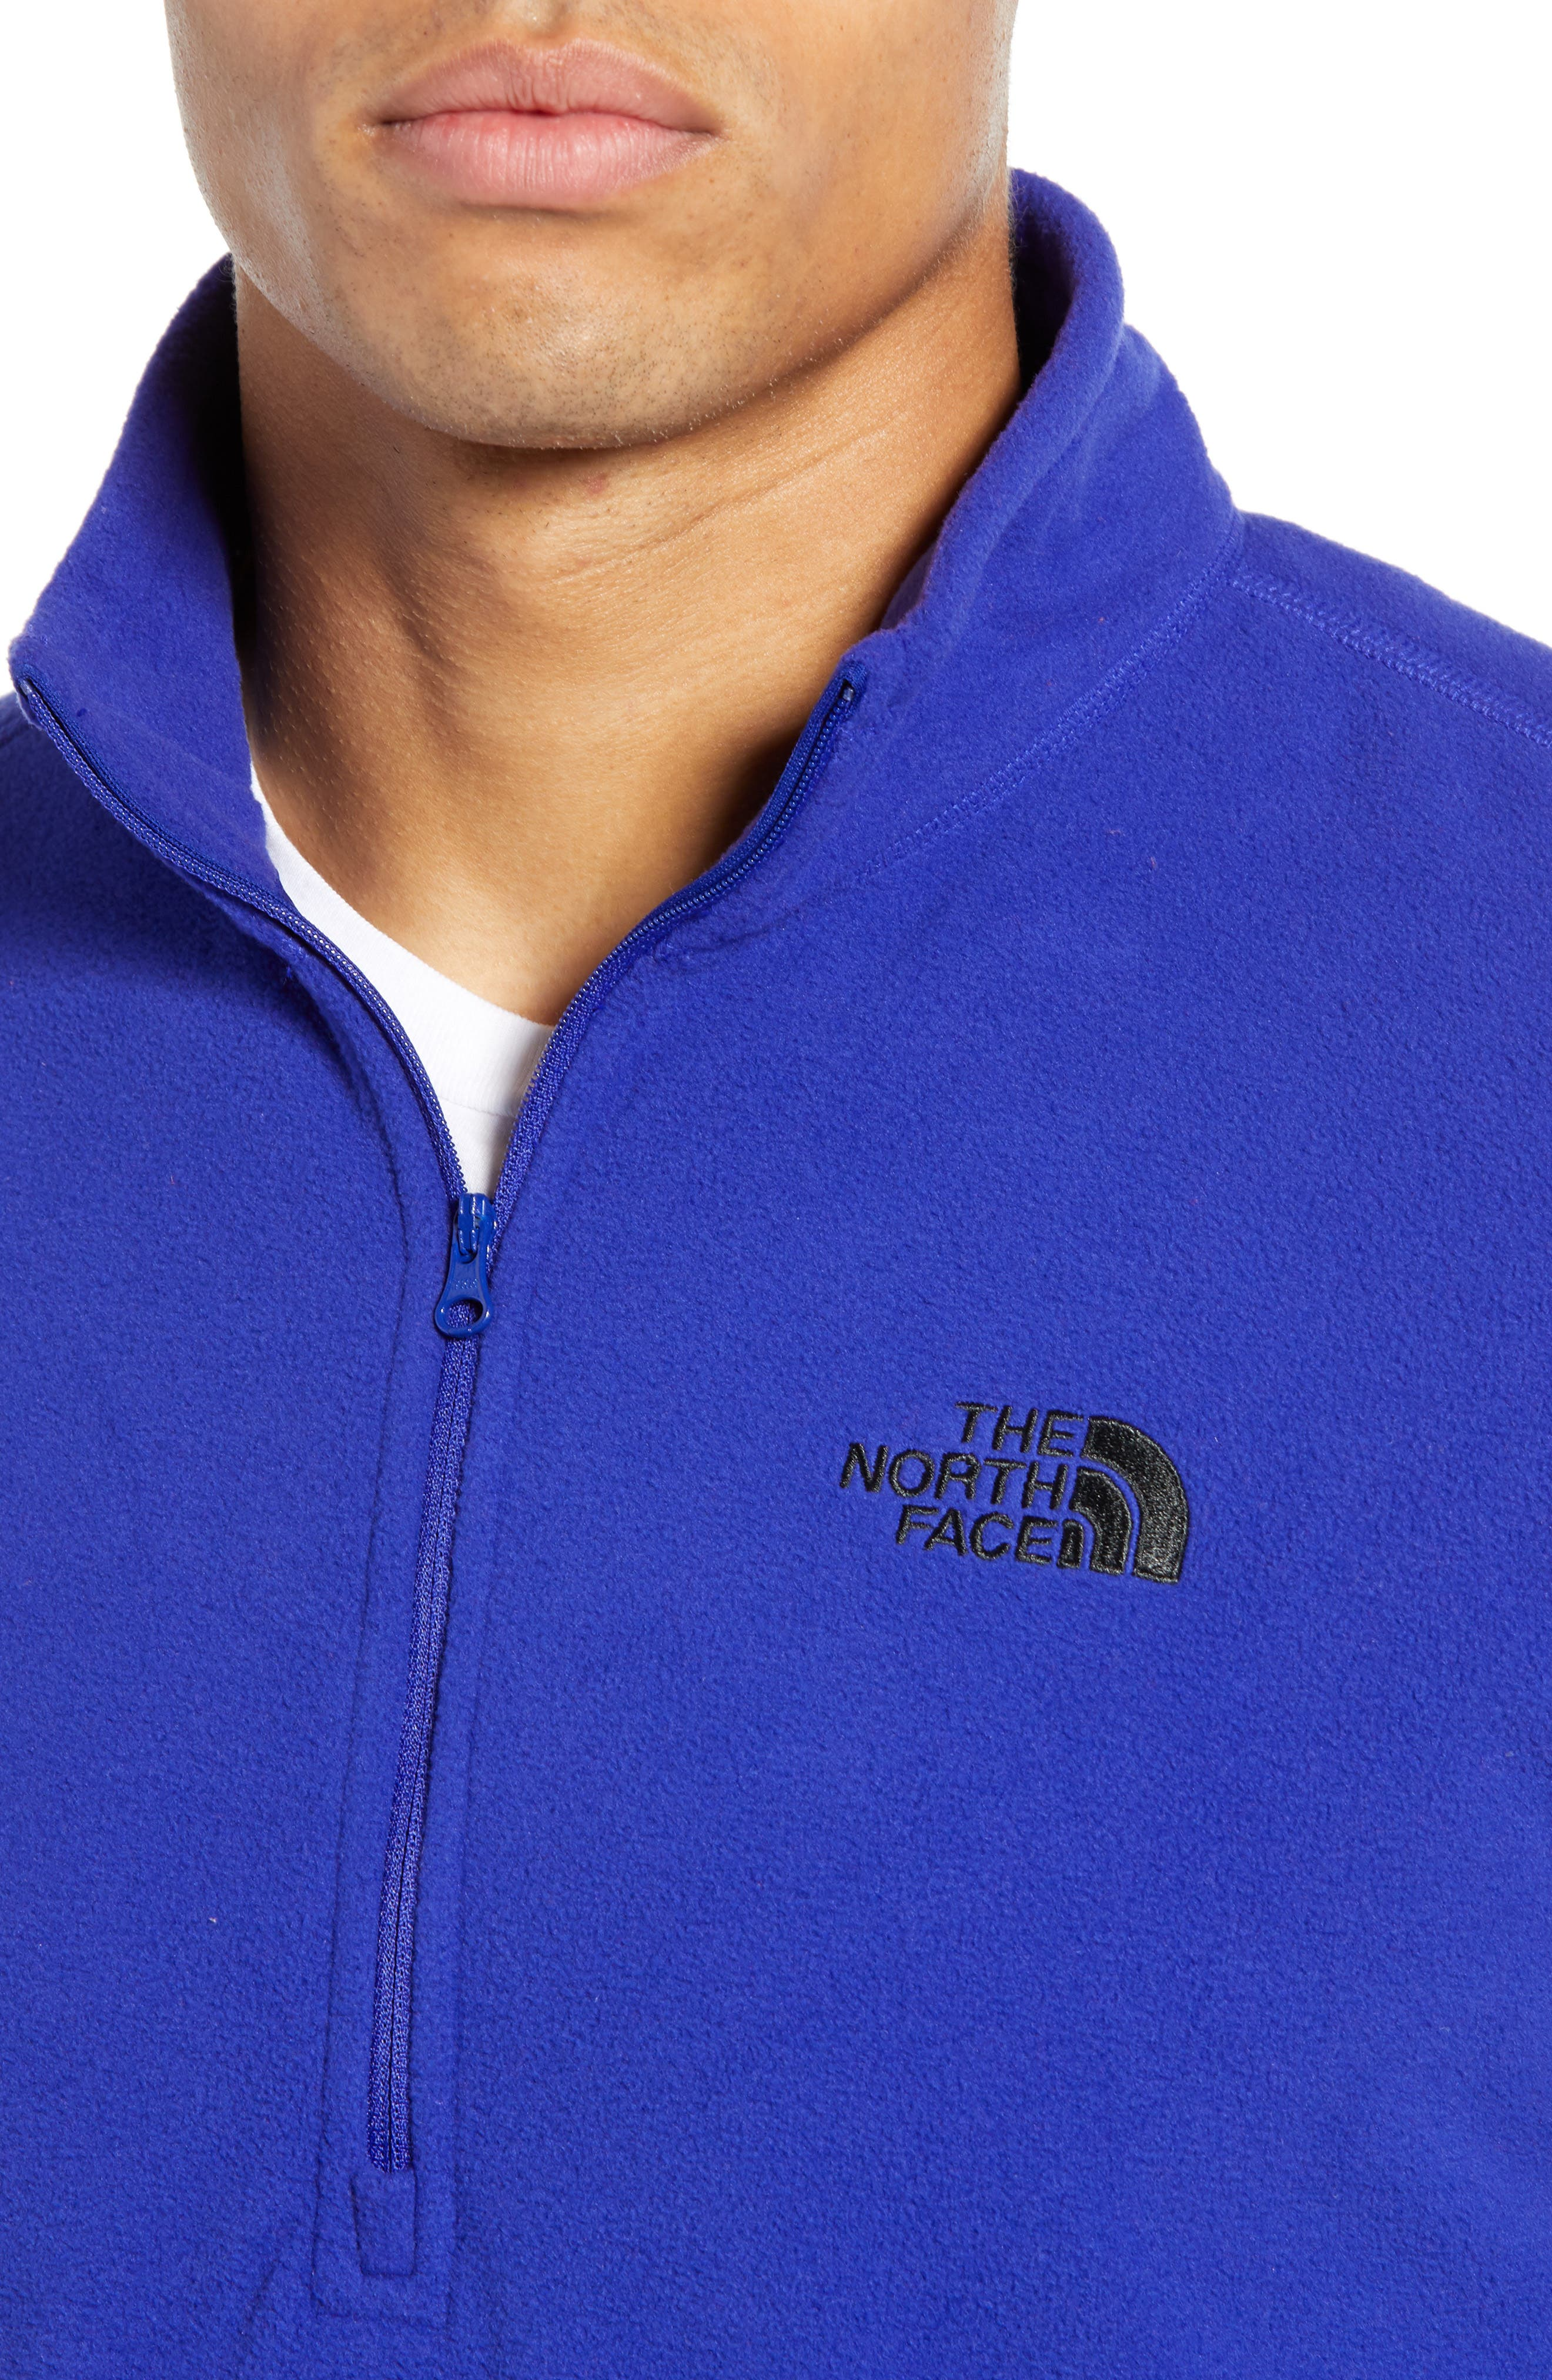 THE NORTH FACE, 'TKA 100 Glacier' Quarter Zip Fleece Pullover, Alternate thumbnail 5, color, AZTEC BLUE